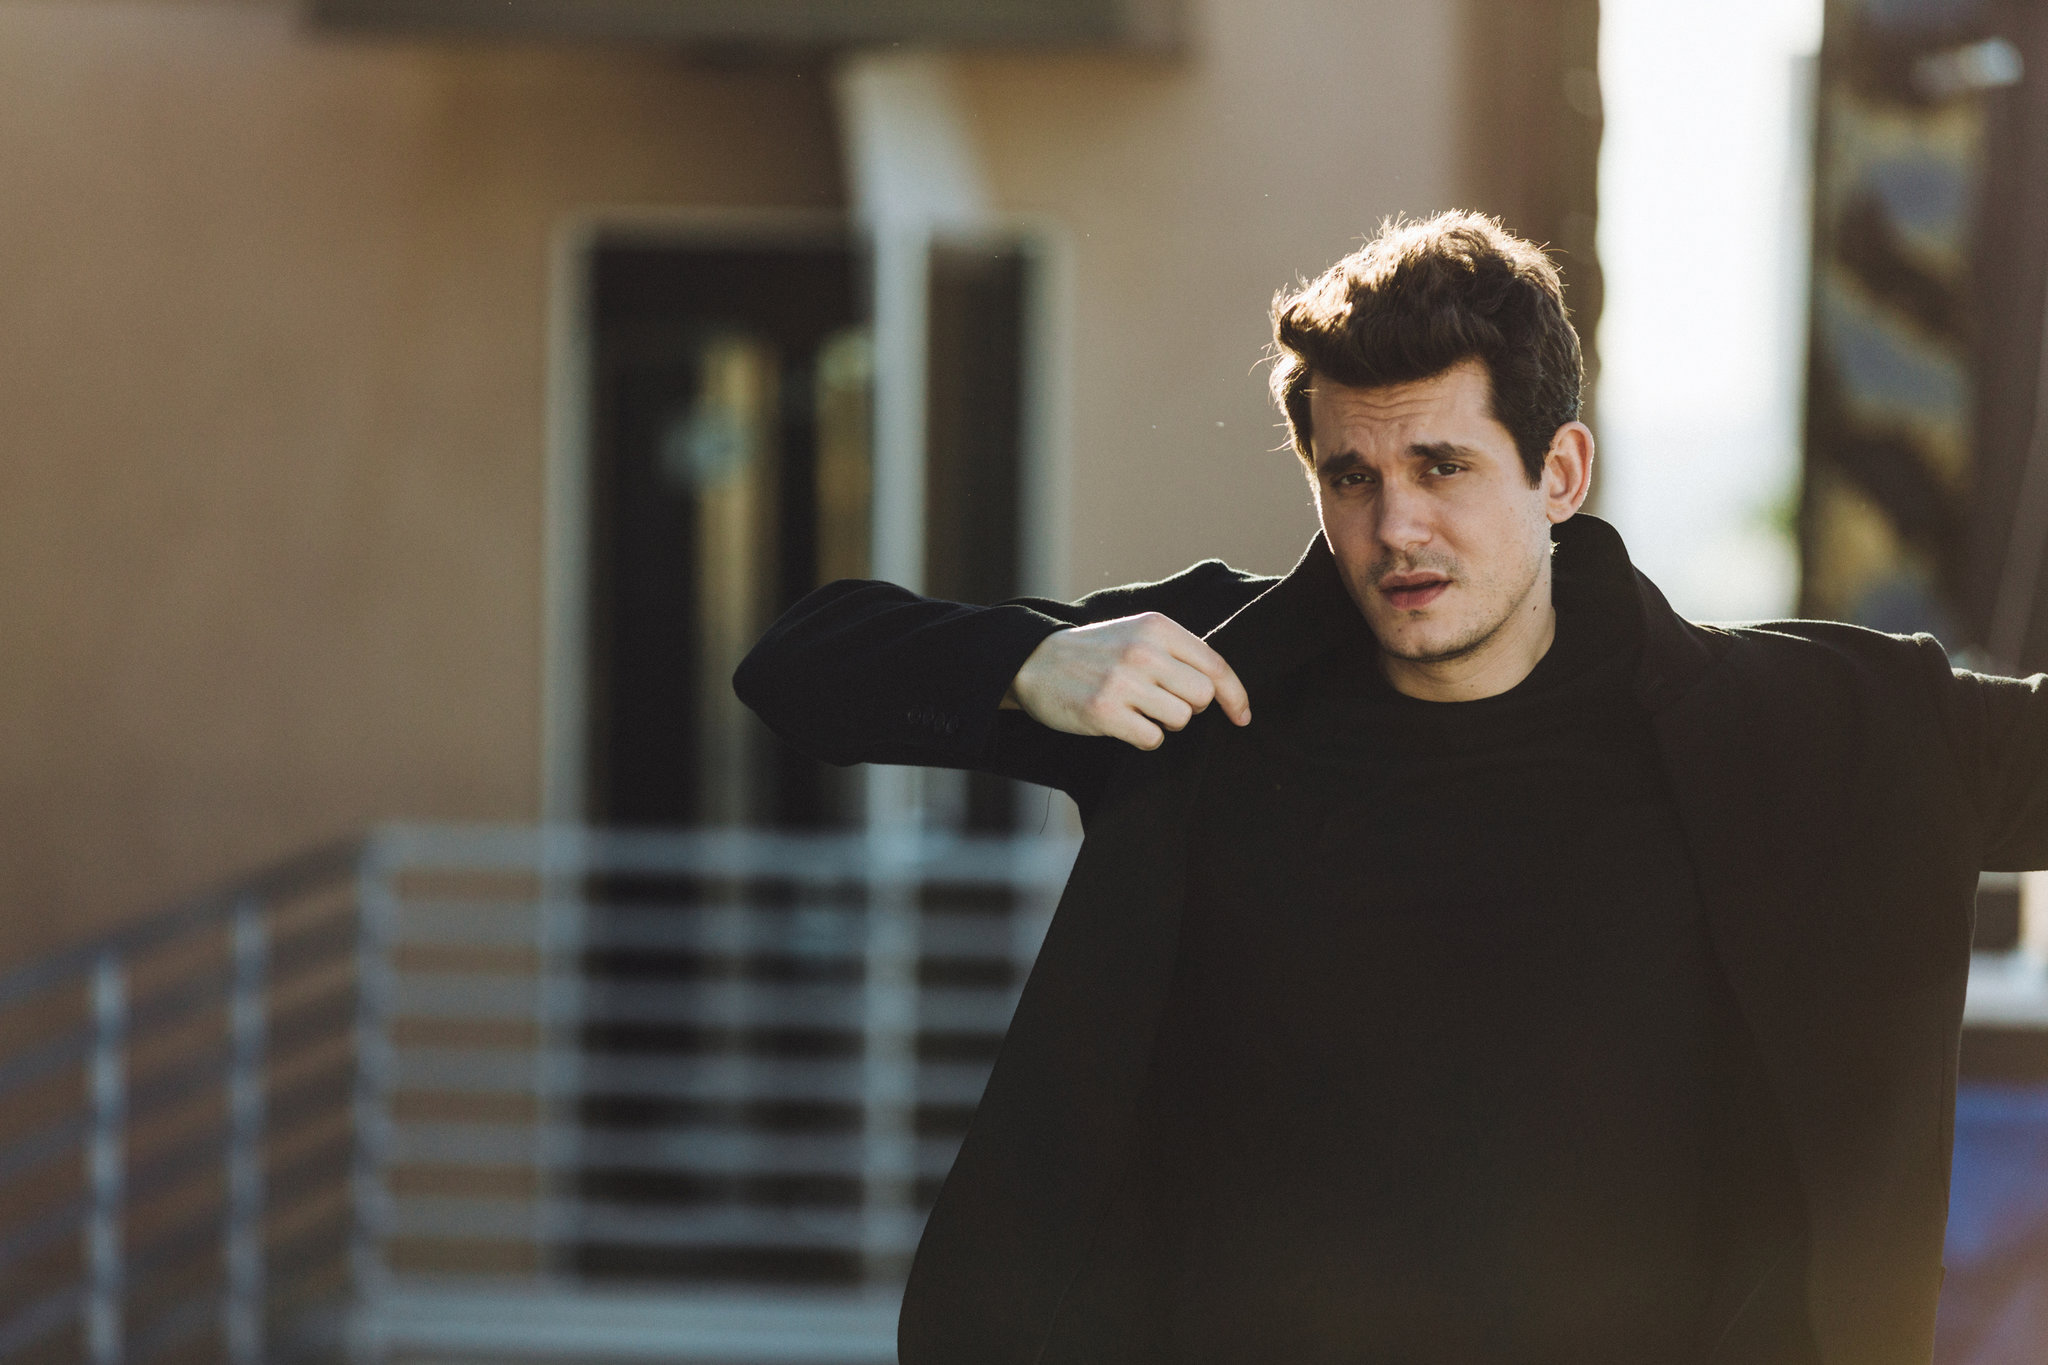 John Mayer still feels like your man, even if life is meaningless